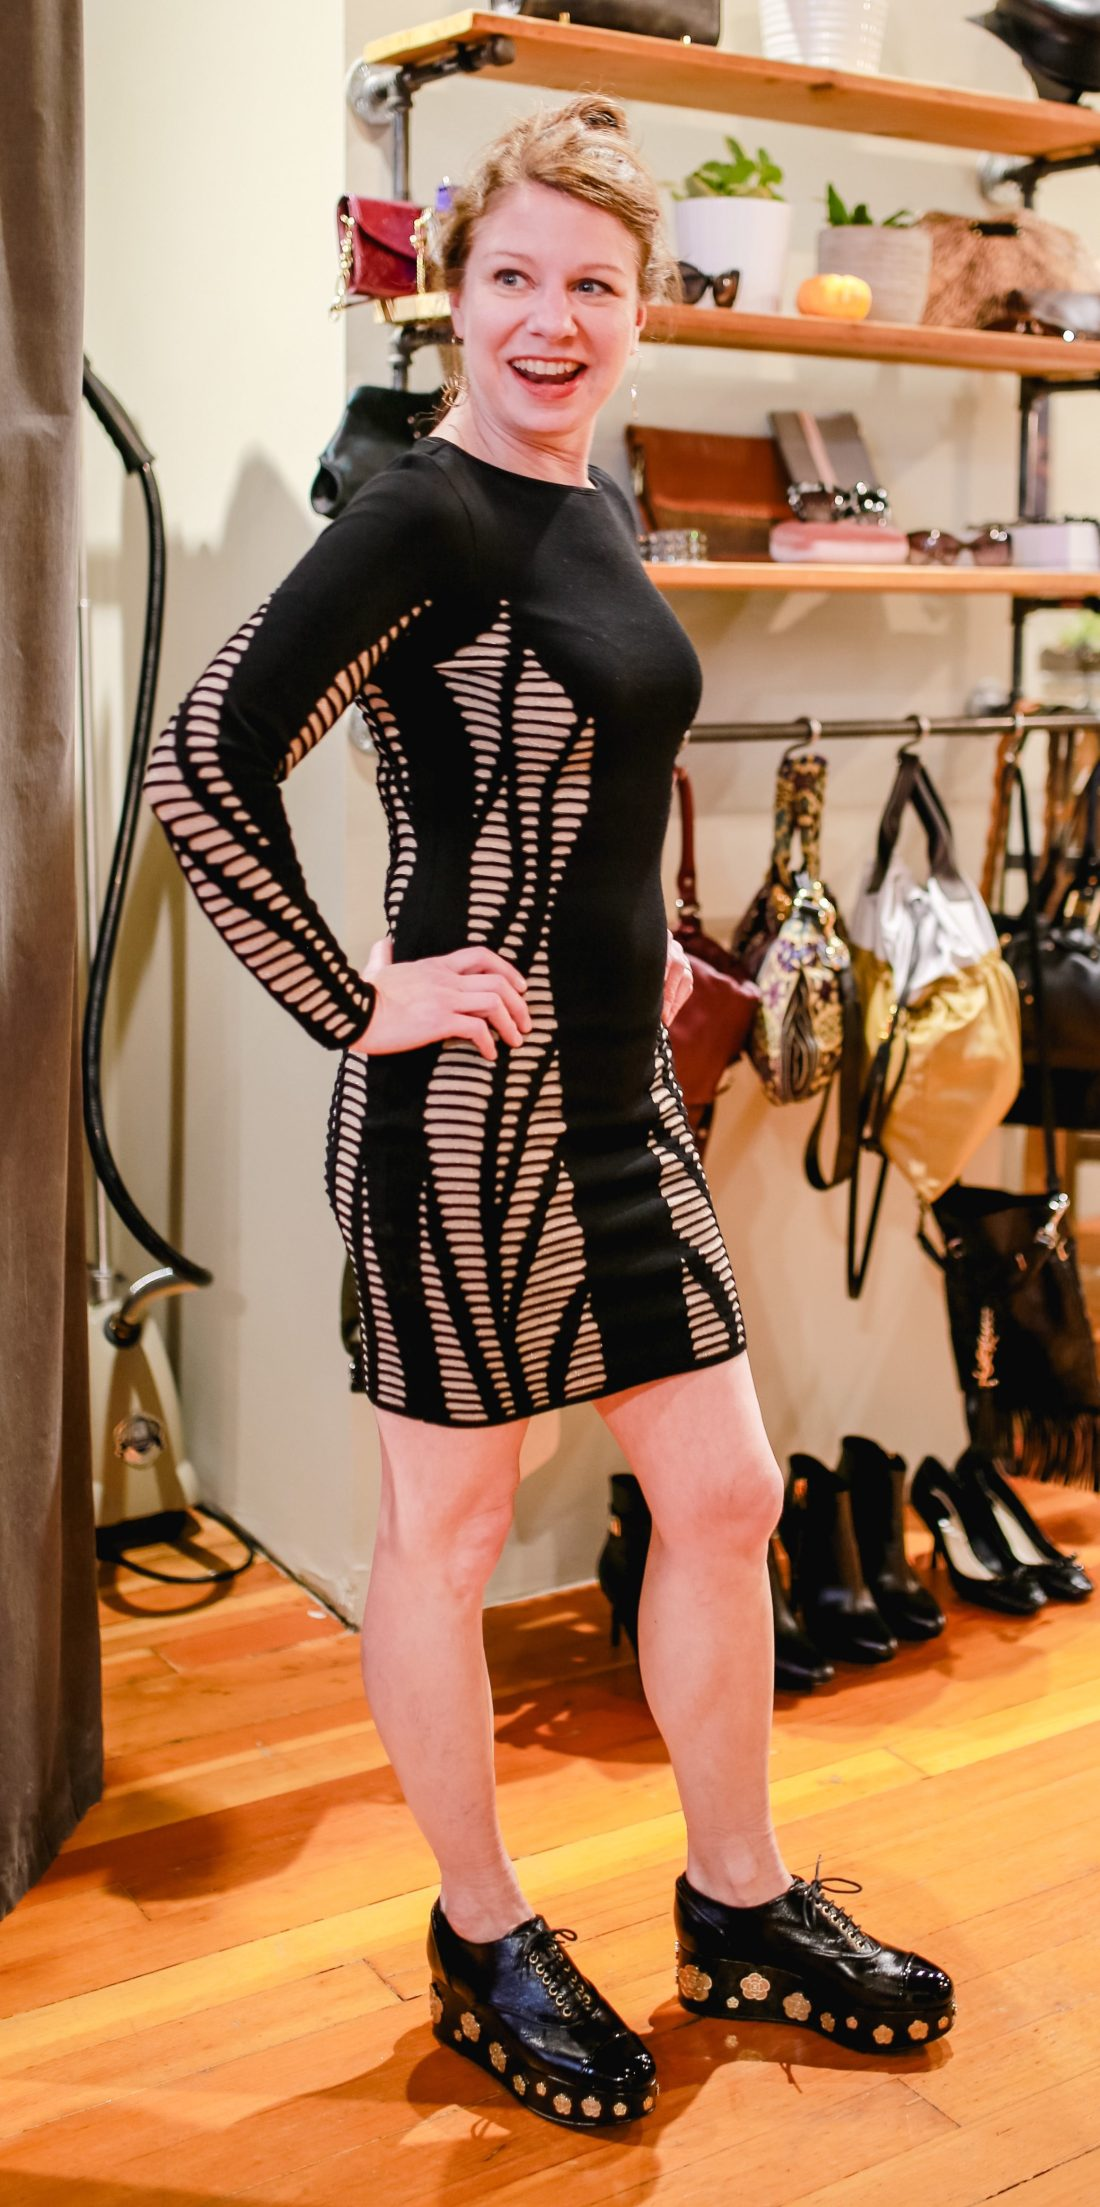 Designer dress at Sell Your Sole Consignment in Seattle.